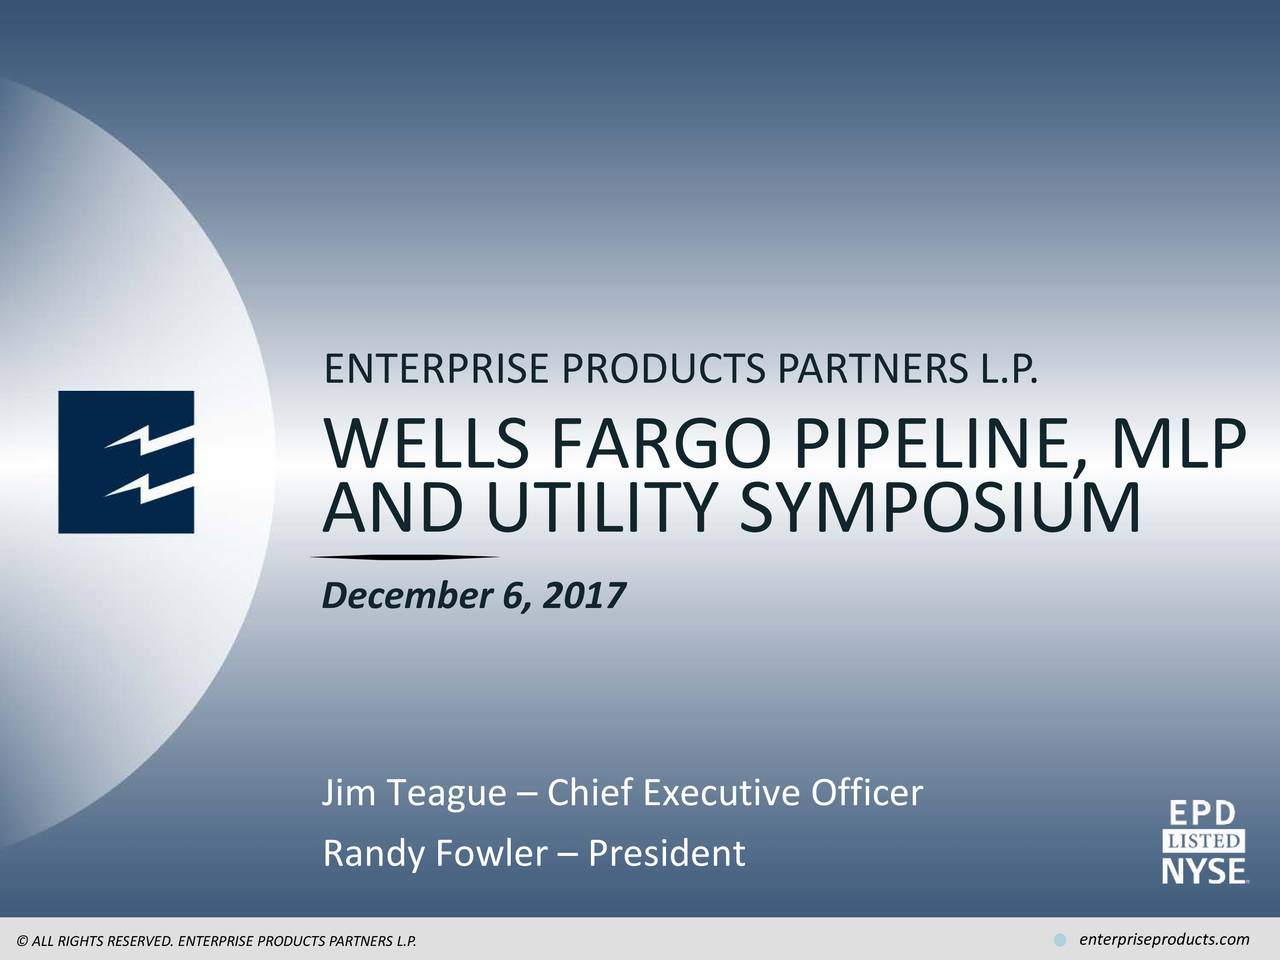 Epd Stock Quote Enterprise Products Partners Epd Presents At 2017 Wells Fargo